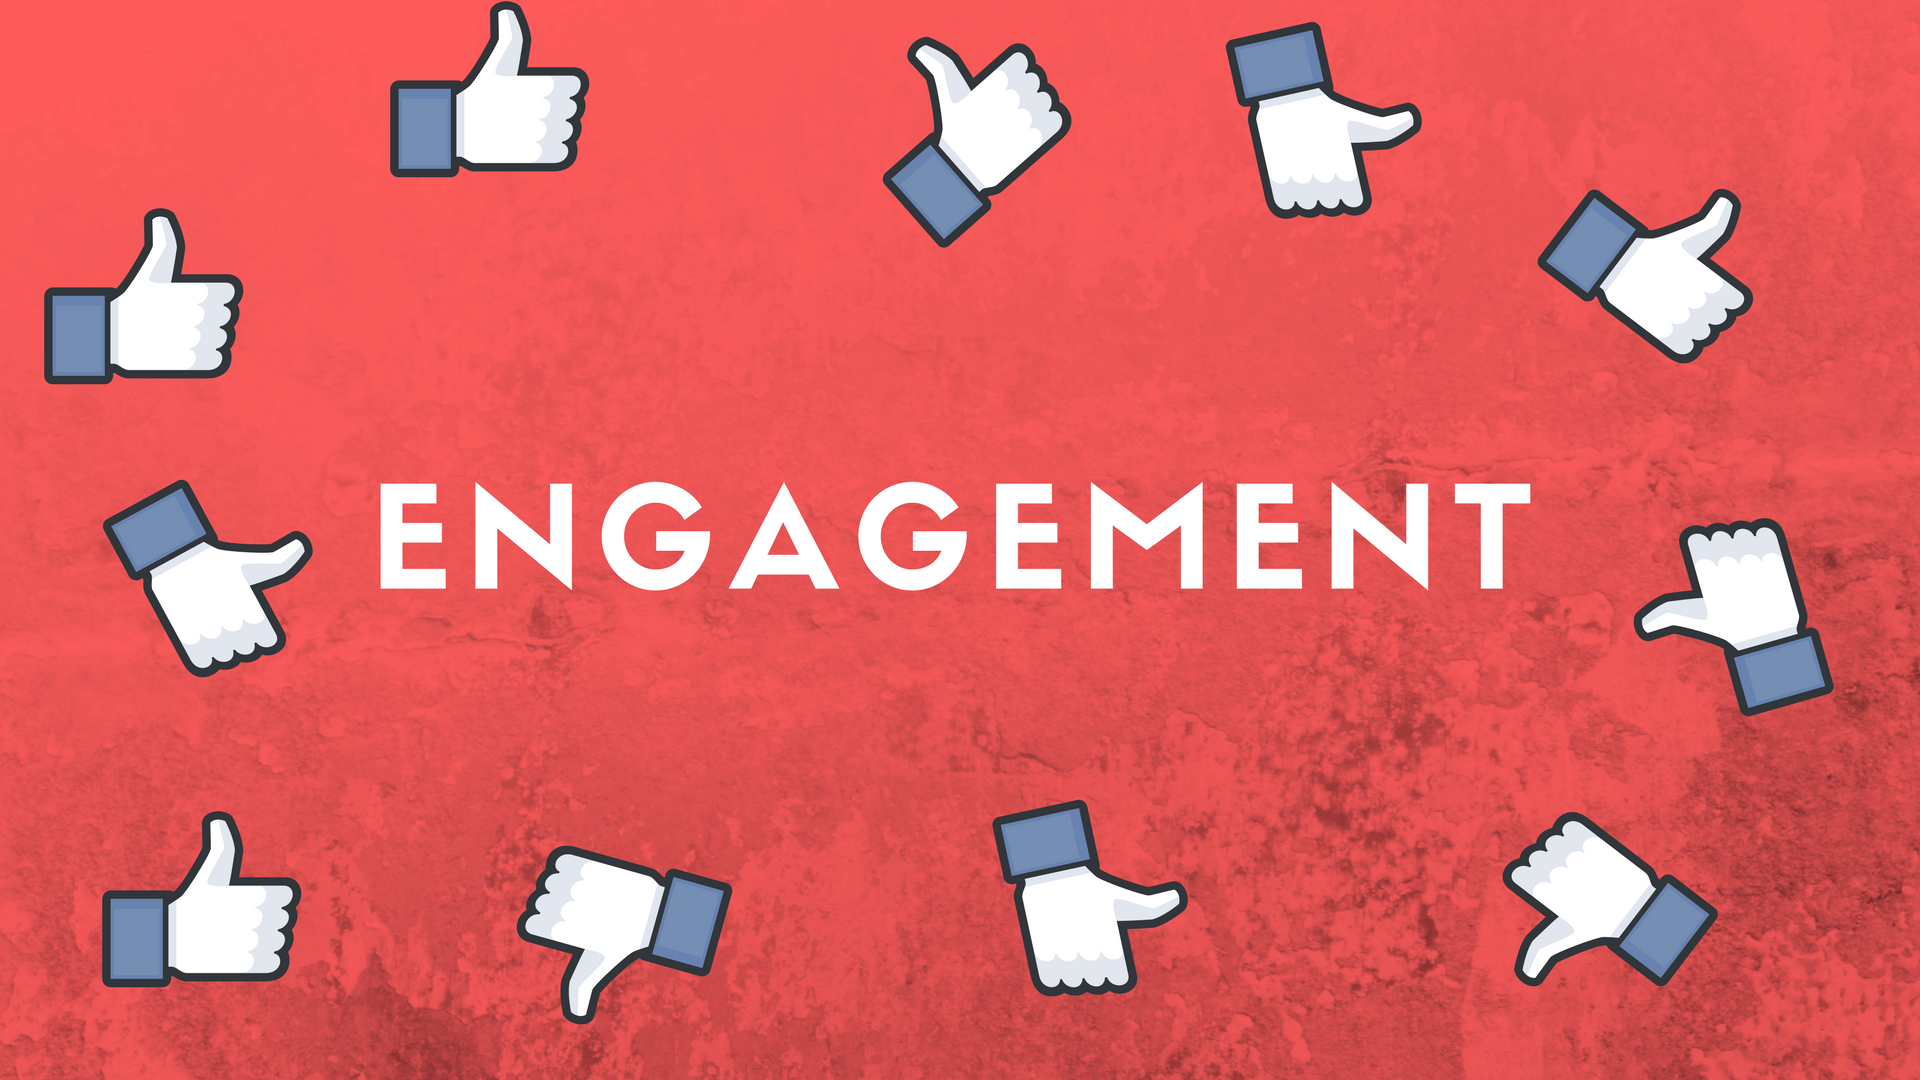 engagement instagram follower metric